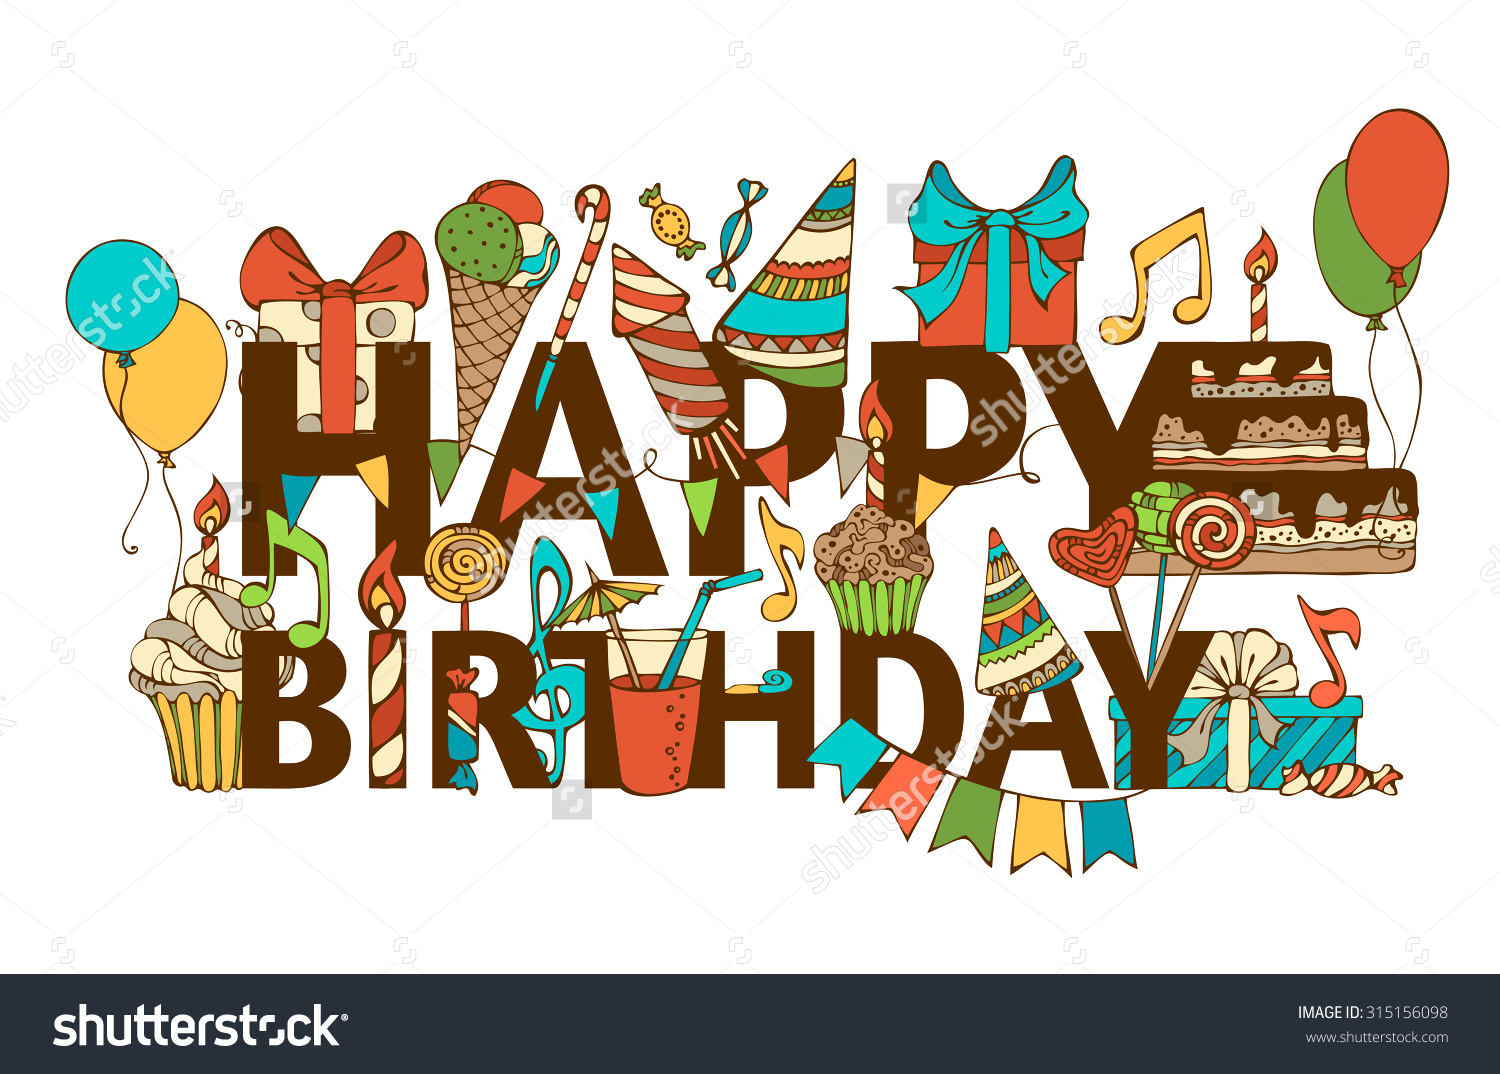 Handdrawn Happy Birthday Background Colourful Doodles Stock Vector.